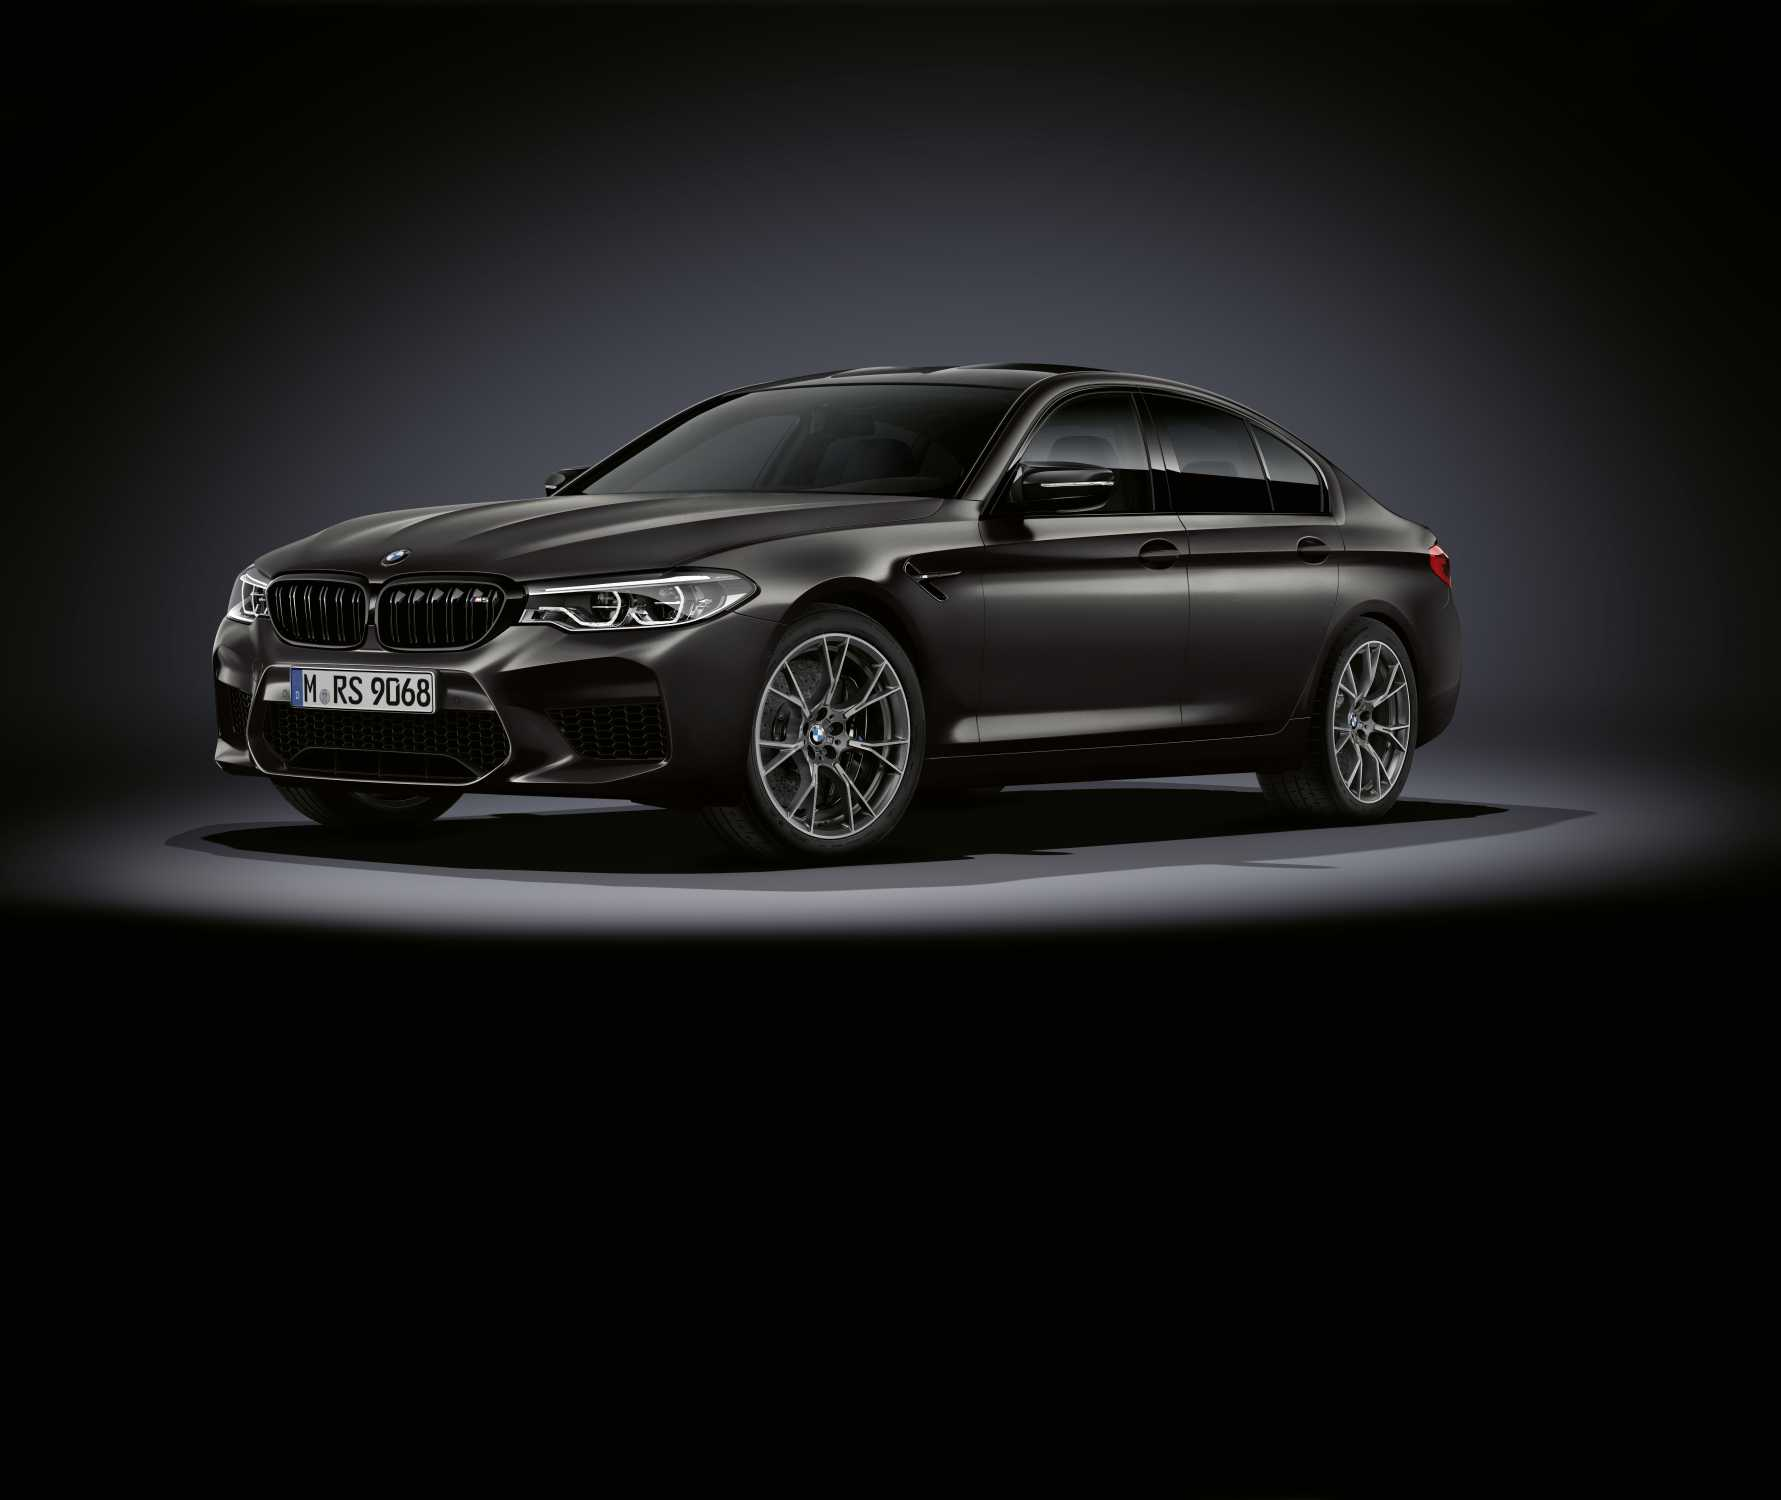 Maximum Performance And Exclusive Style The Bmw M5 Edition 35 Years